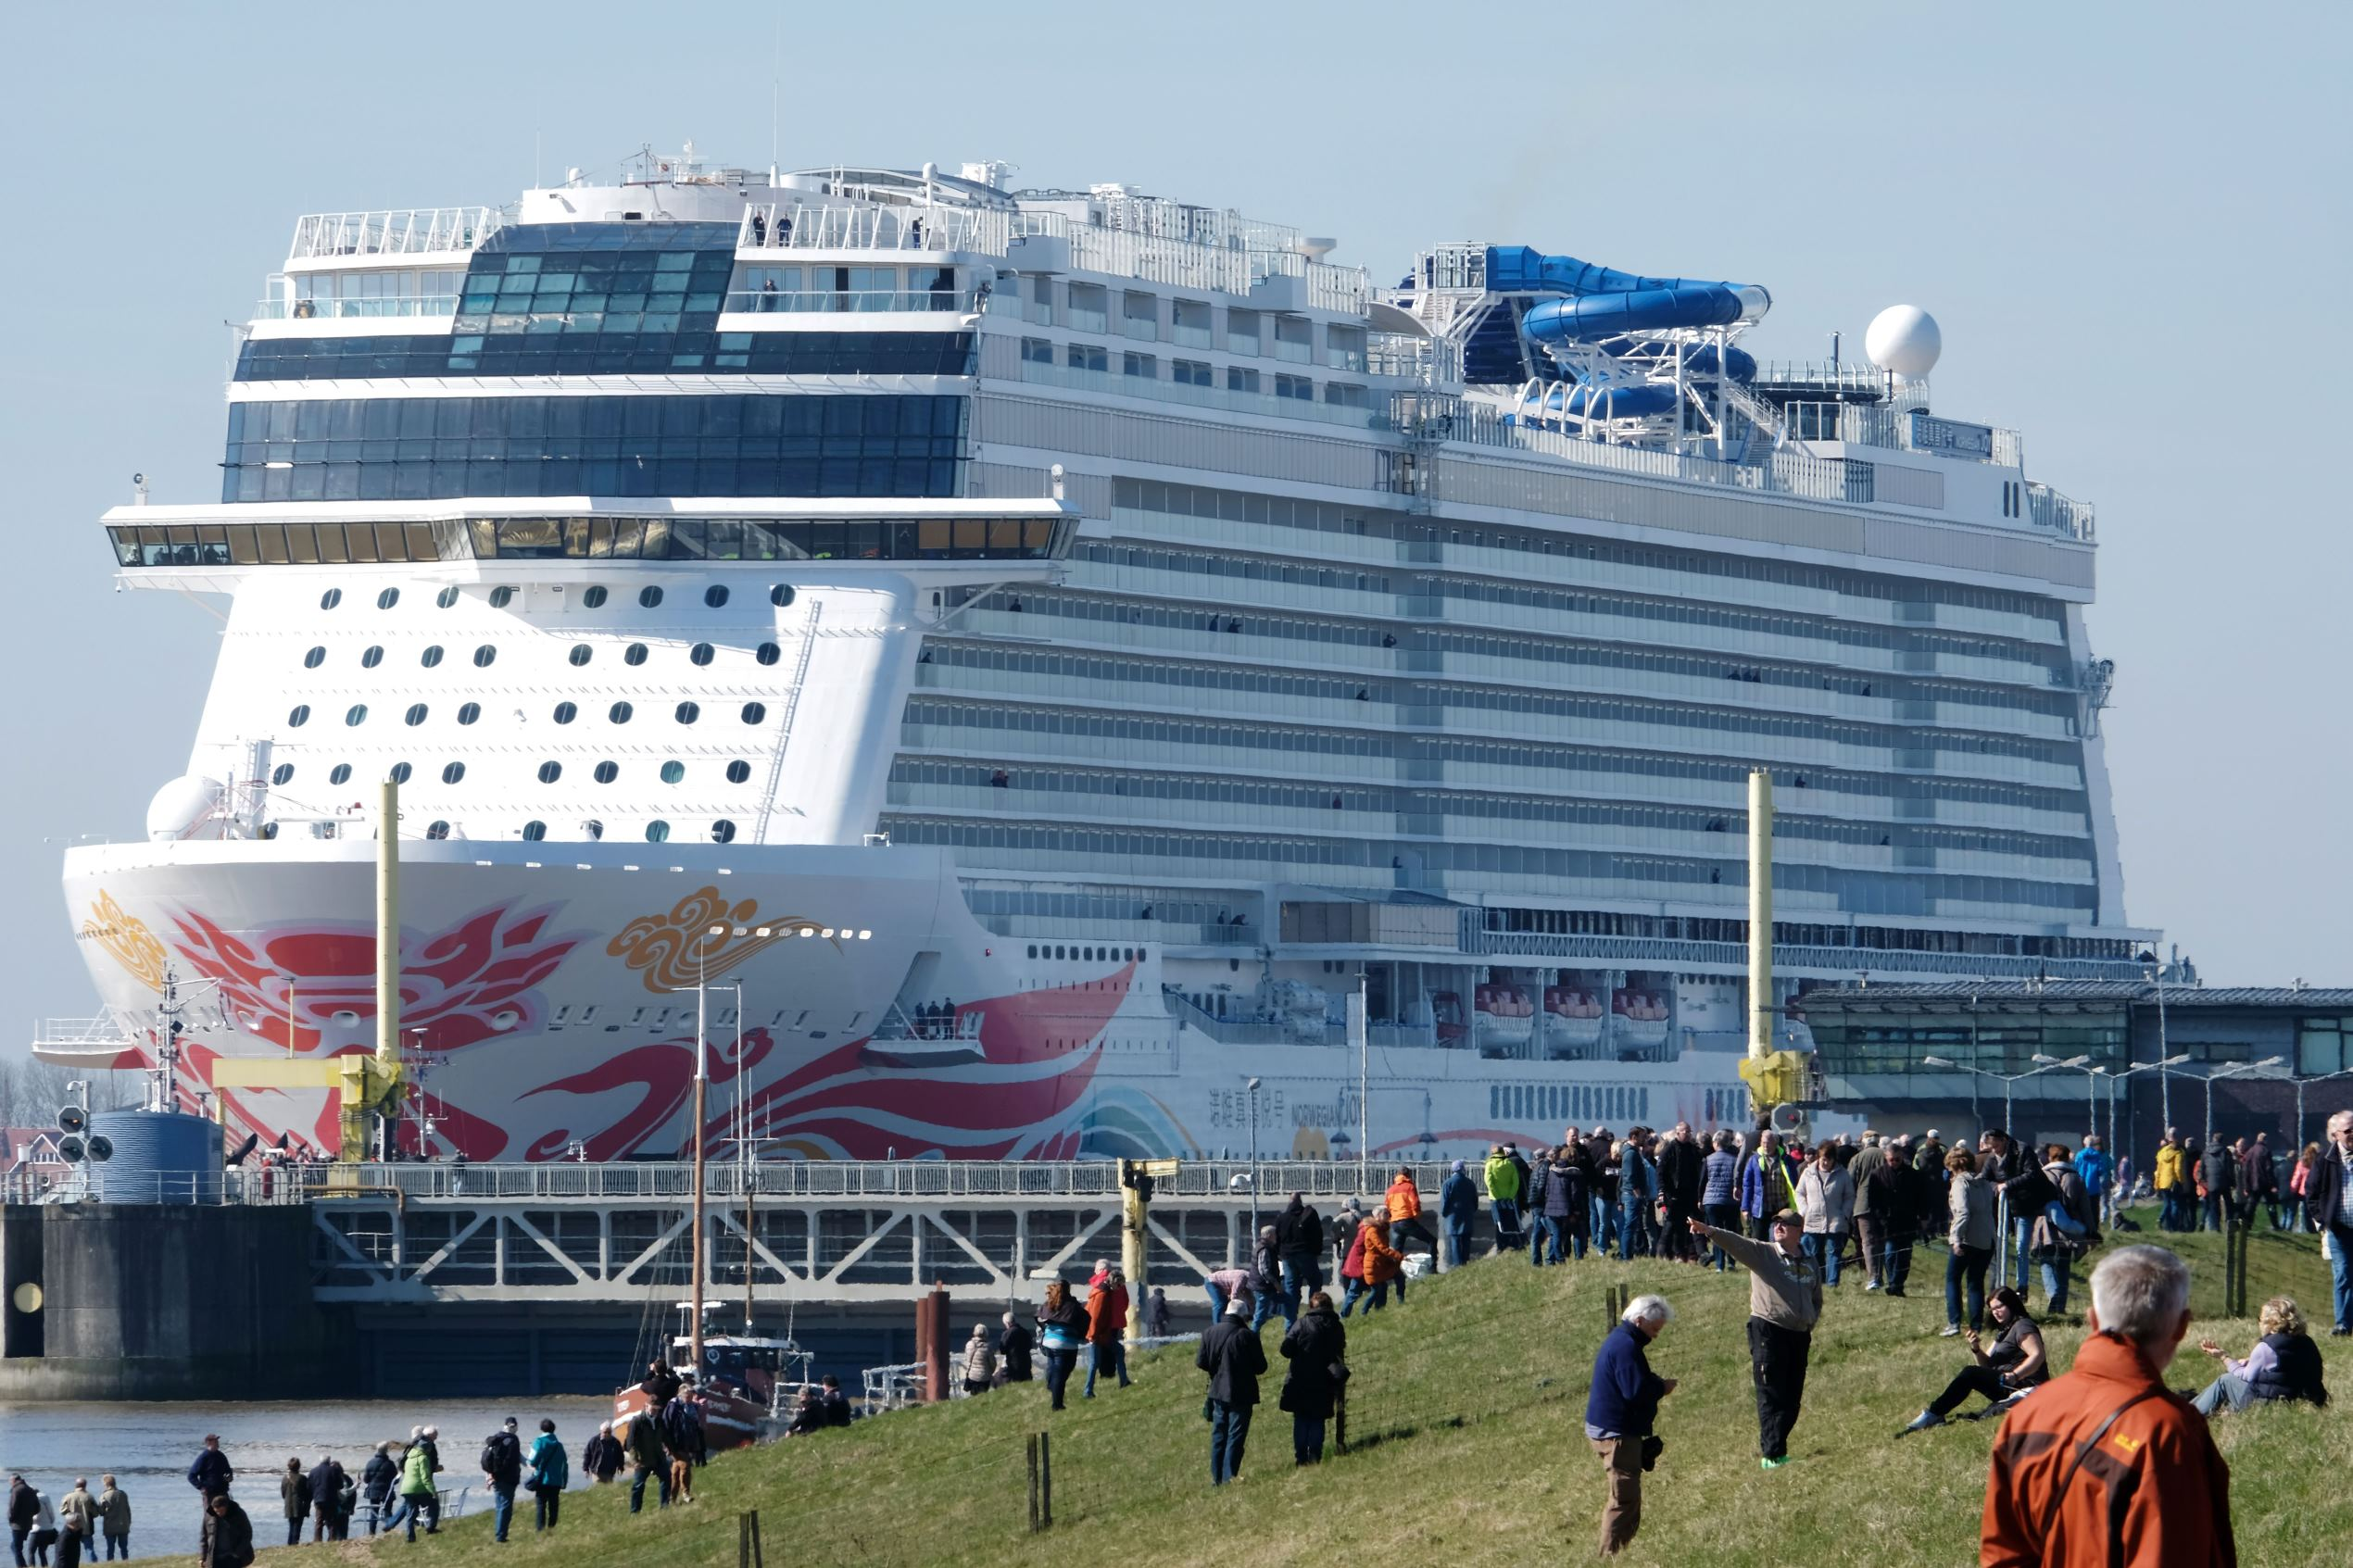 Slide 23 of 31: Spectators look on as the 'Norwegian Joy' cruise ship, previously named 'Norwegian Bliss', passes a shipping lock to make its way over the river Ems near Emden, northern Germany, on March 27, 2017. The ship of the Norwegian Cruise Line, that was built at the Meyer Werft shipyard in Papenburg, northern Germany, is made ready to enter service. Final technical and nautical tests are due to be carried out during the following days on the North Sea. / AFP PHOTO / PATRIK STOLLARZ (Photo credit should read PATRIK STOLLARZ/AFP/Getty Images